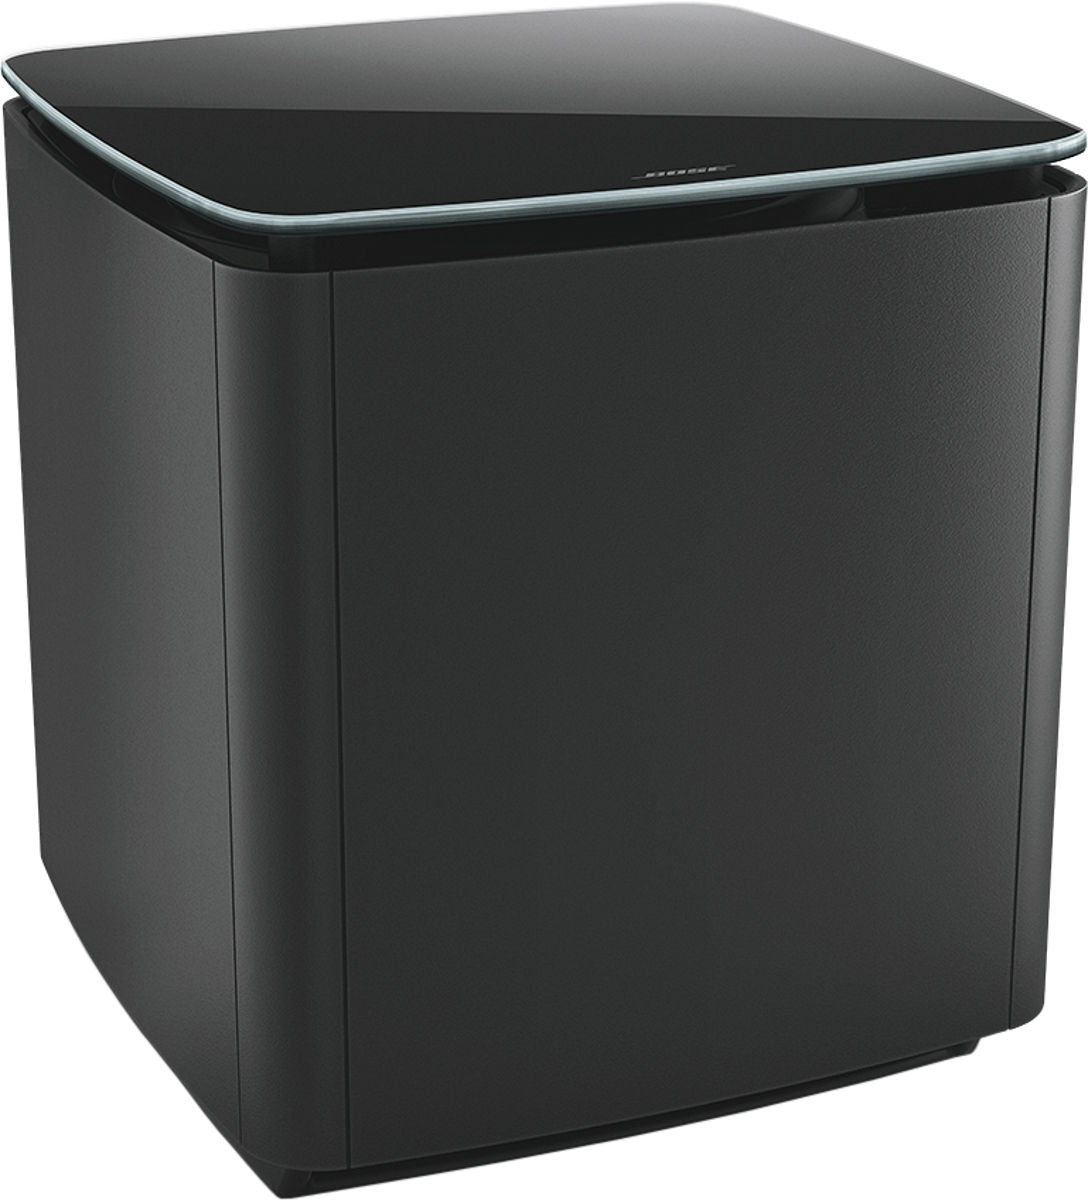 bose acoustimass 300 caissons de basses son vid. Black Bedroom Furniture Sets. Home Design Ideas